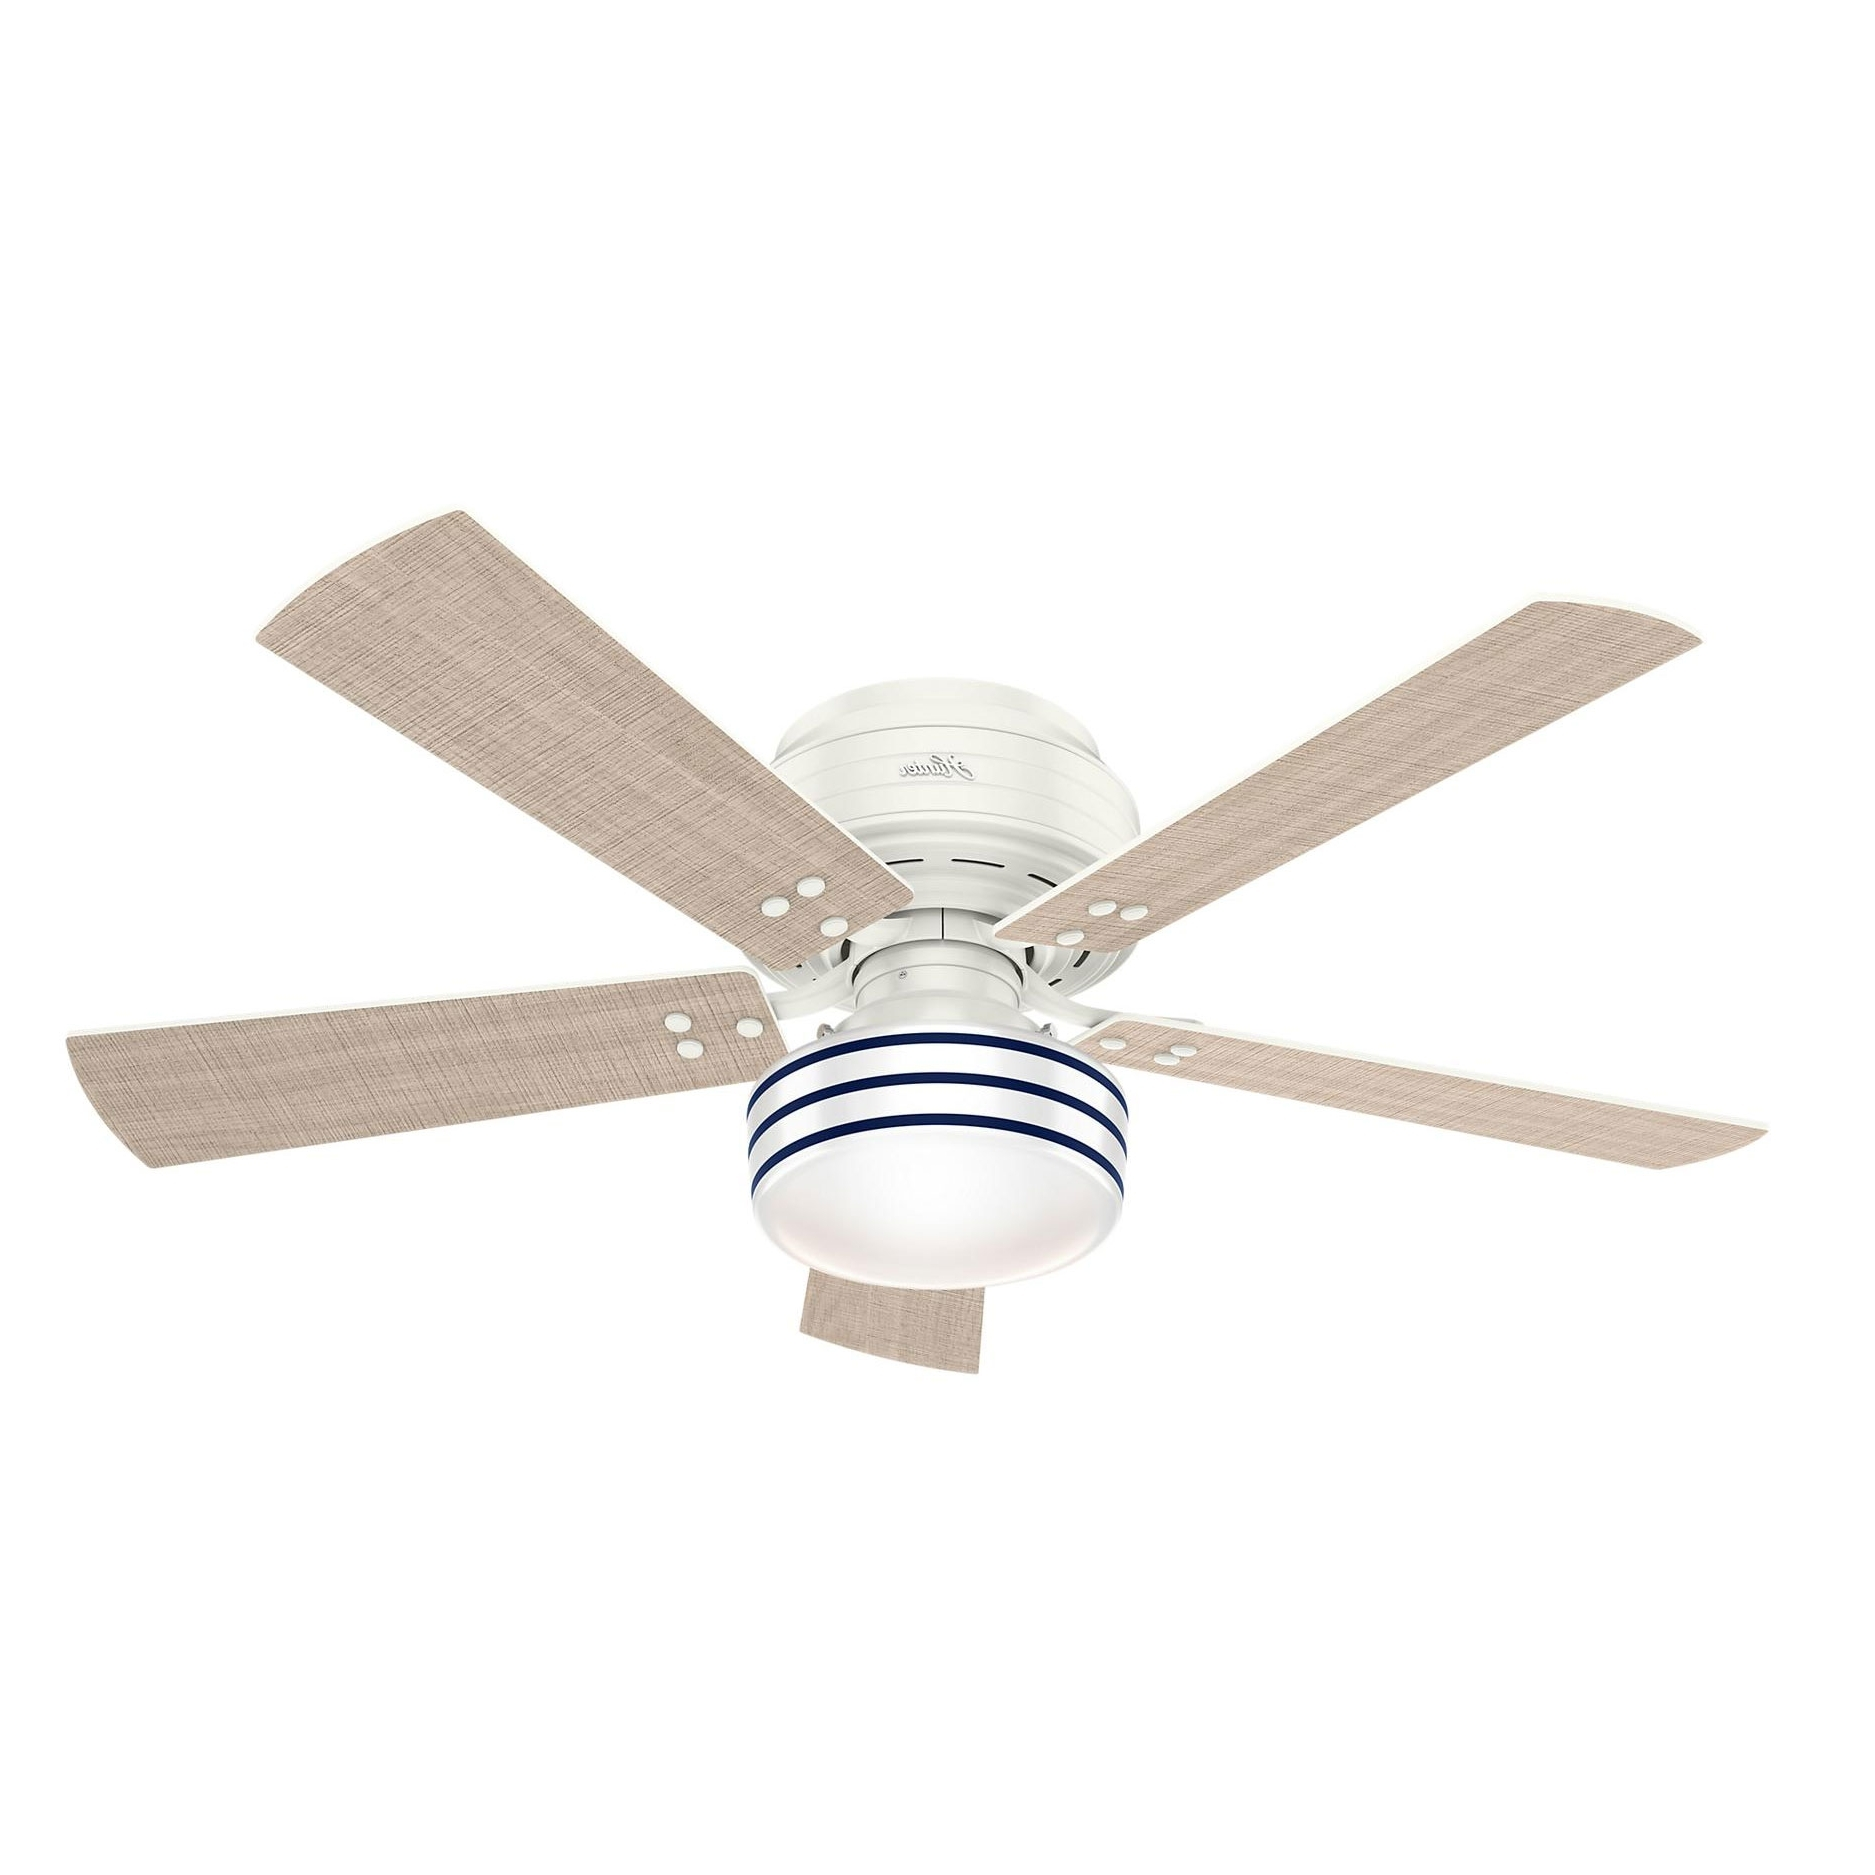 Cedar Key Low Profile Indoor/outdoor Ceiling Fan With Light Throughout Most Recently Released Low Profile Outdoor Ceiling Fans With Lights (View 2 of 20)